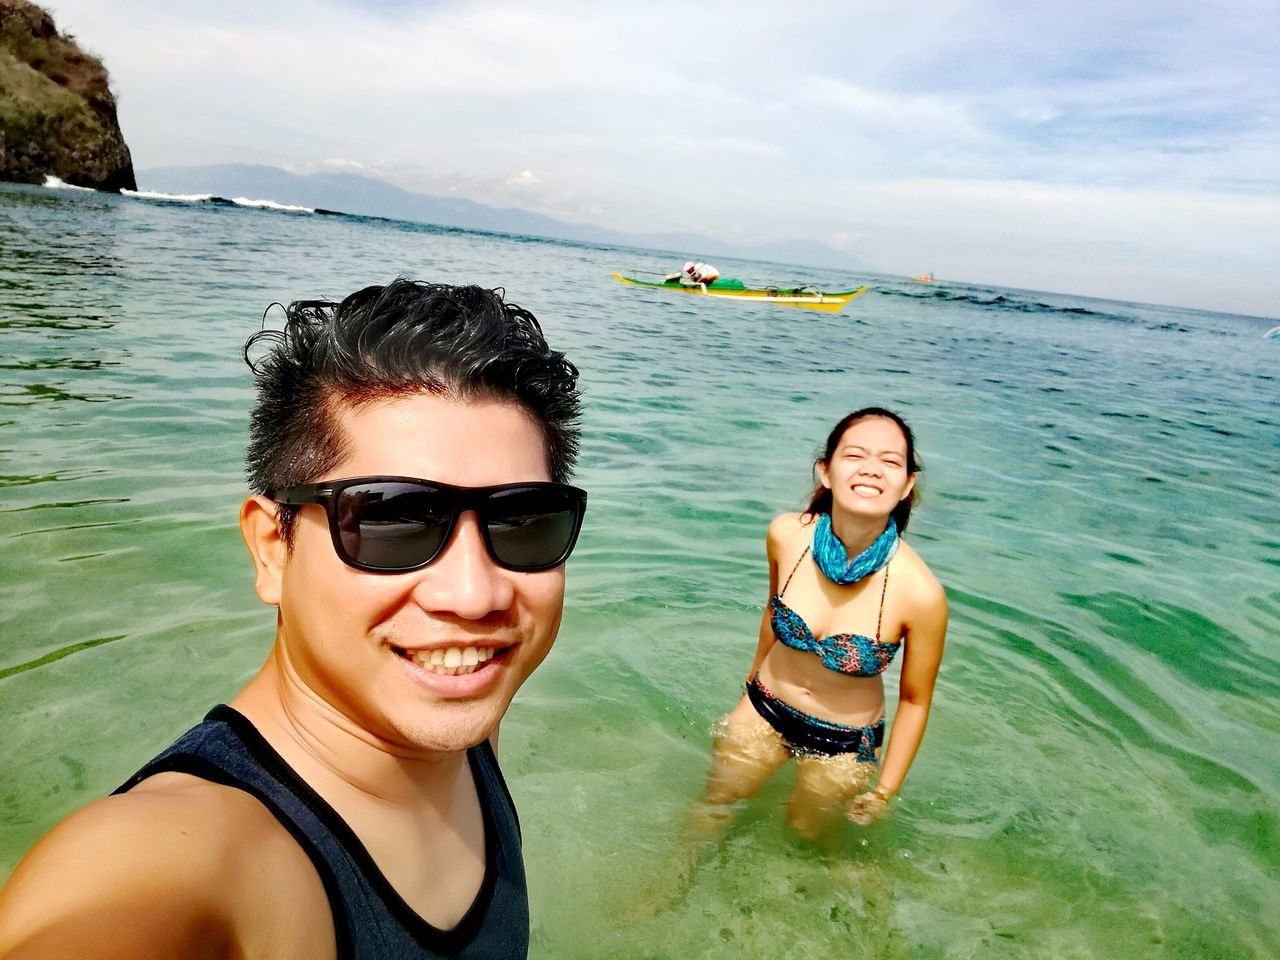 looking at camera, smiling, two people, real people, leisure activity, portrait, happiness, sea, lifestyles, young adult, water, young women, nature, outdoors, togetherness, beauty in nature, day, cheerful, enjoyment, sky, vacations, standing, weekend activities, adventure, scenics, bonding, friendship